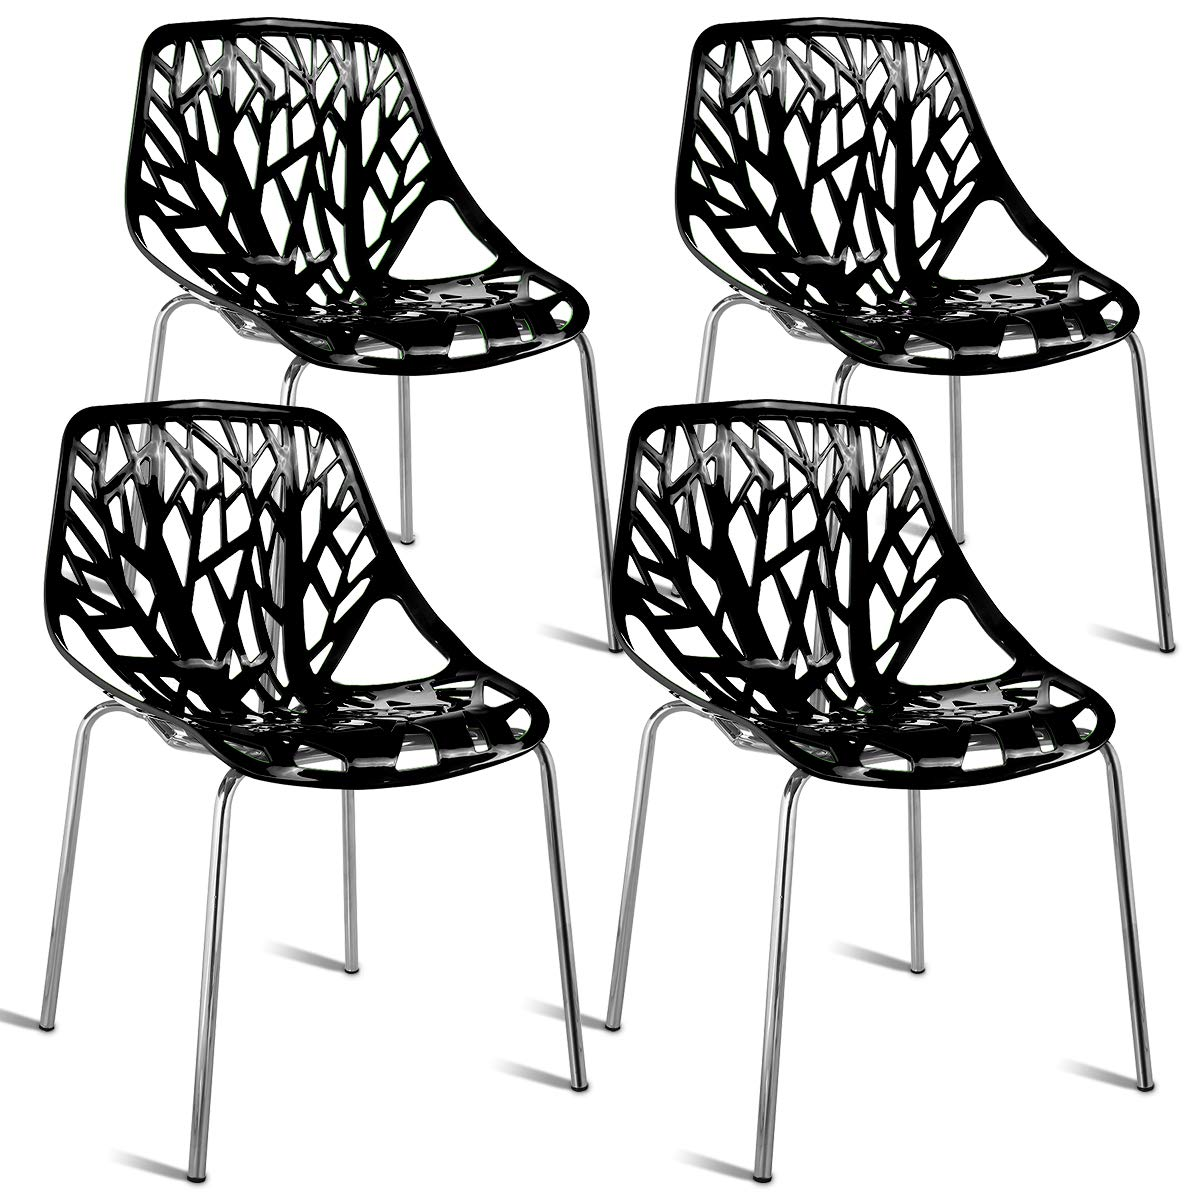 Giantex Set of 4 Modern Dining Chairs Birds Nest Set Modern Stackable Plastic Hollow-Out Geometric Style Furniture Outdoor Indoor Dining Side Chair (4 Packs, Black) by Giantex